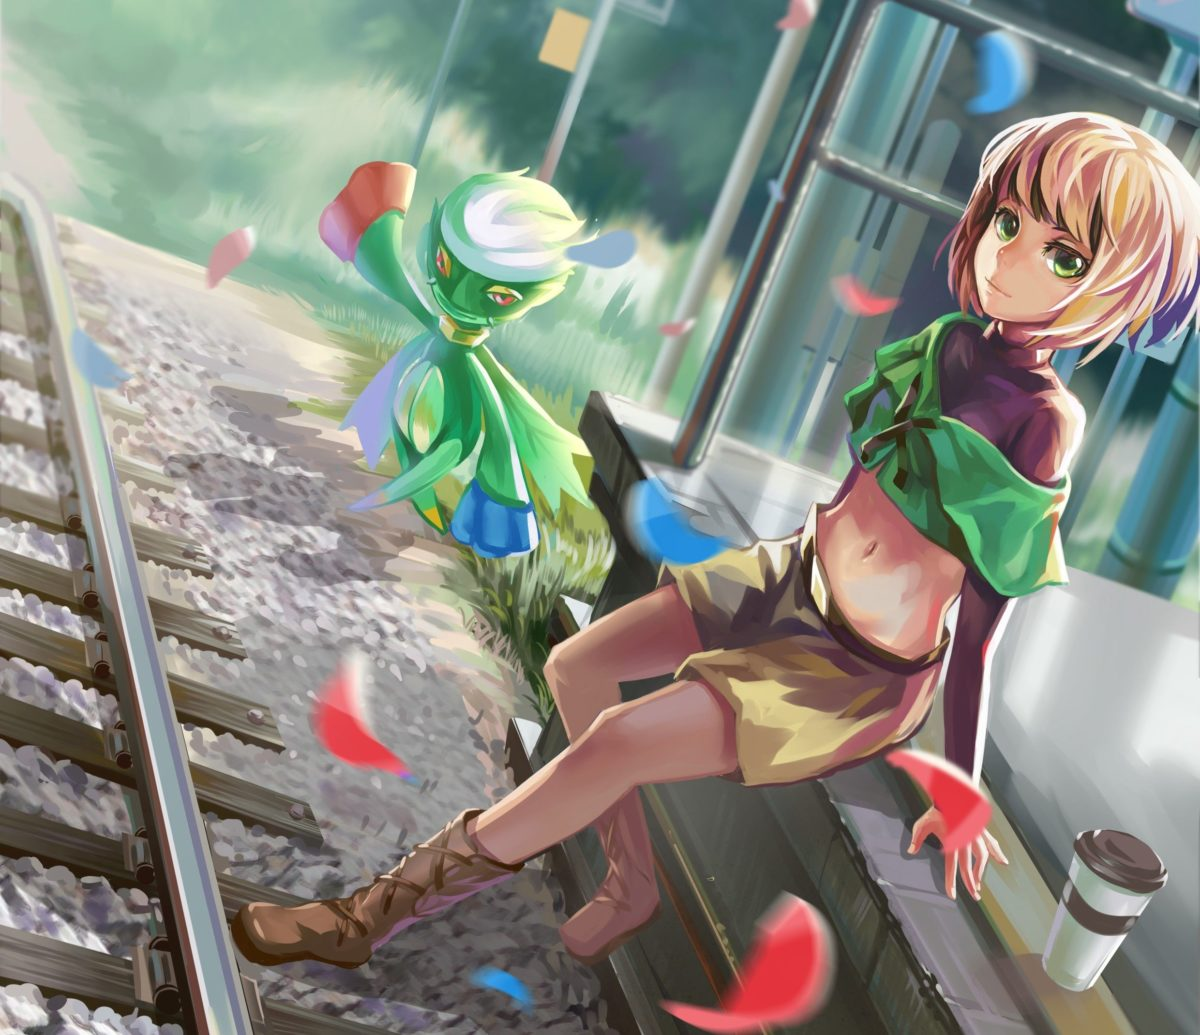 Pokemon trainer and Roselia Full HD Wallpaper and Background Image …